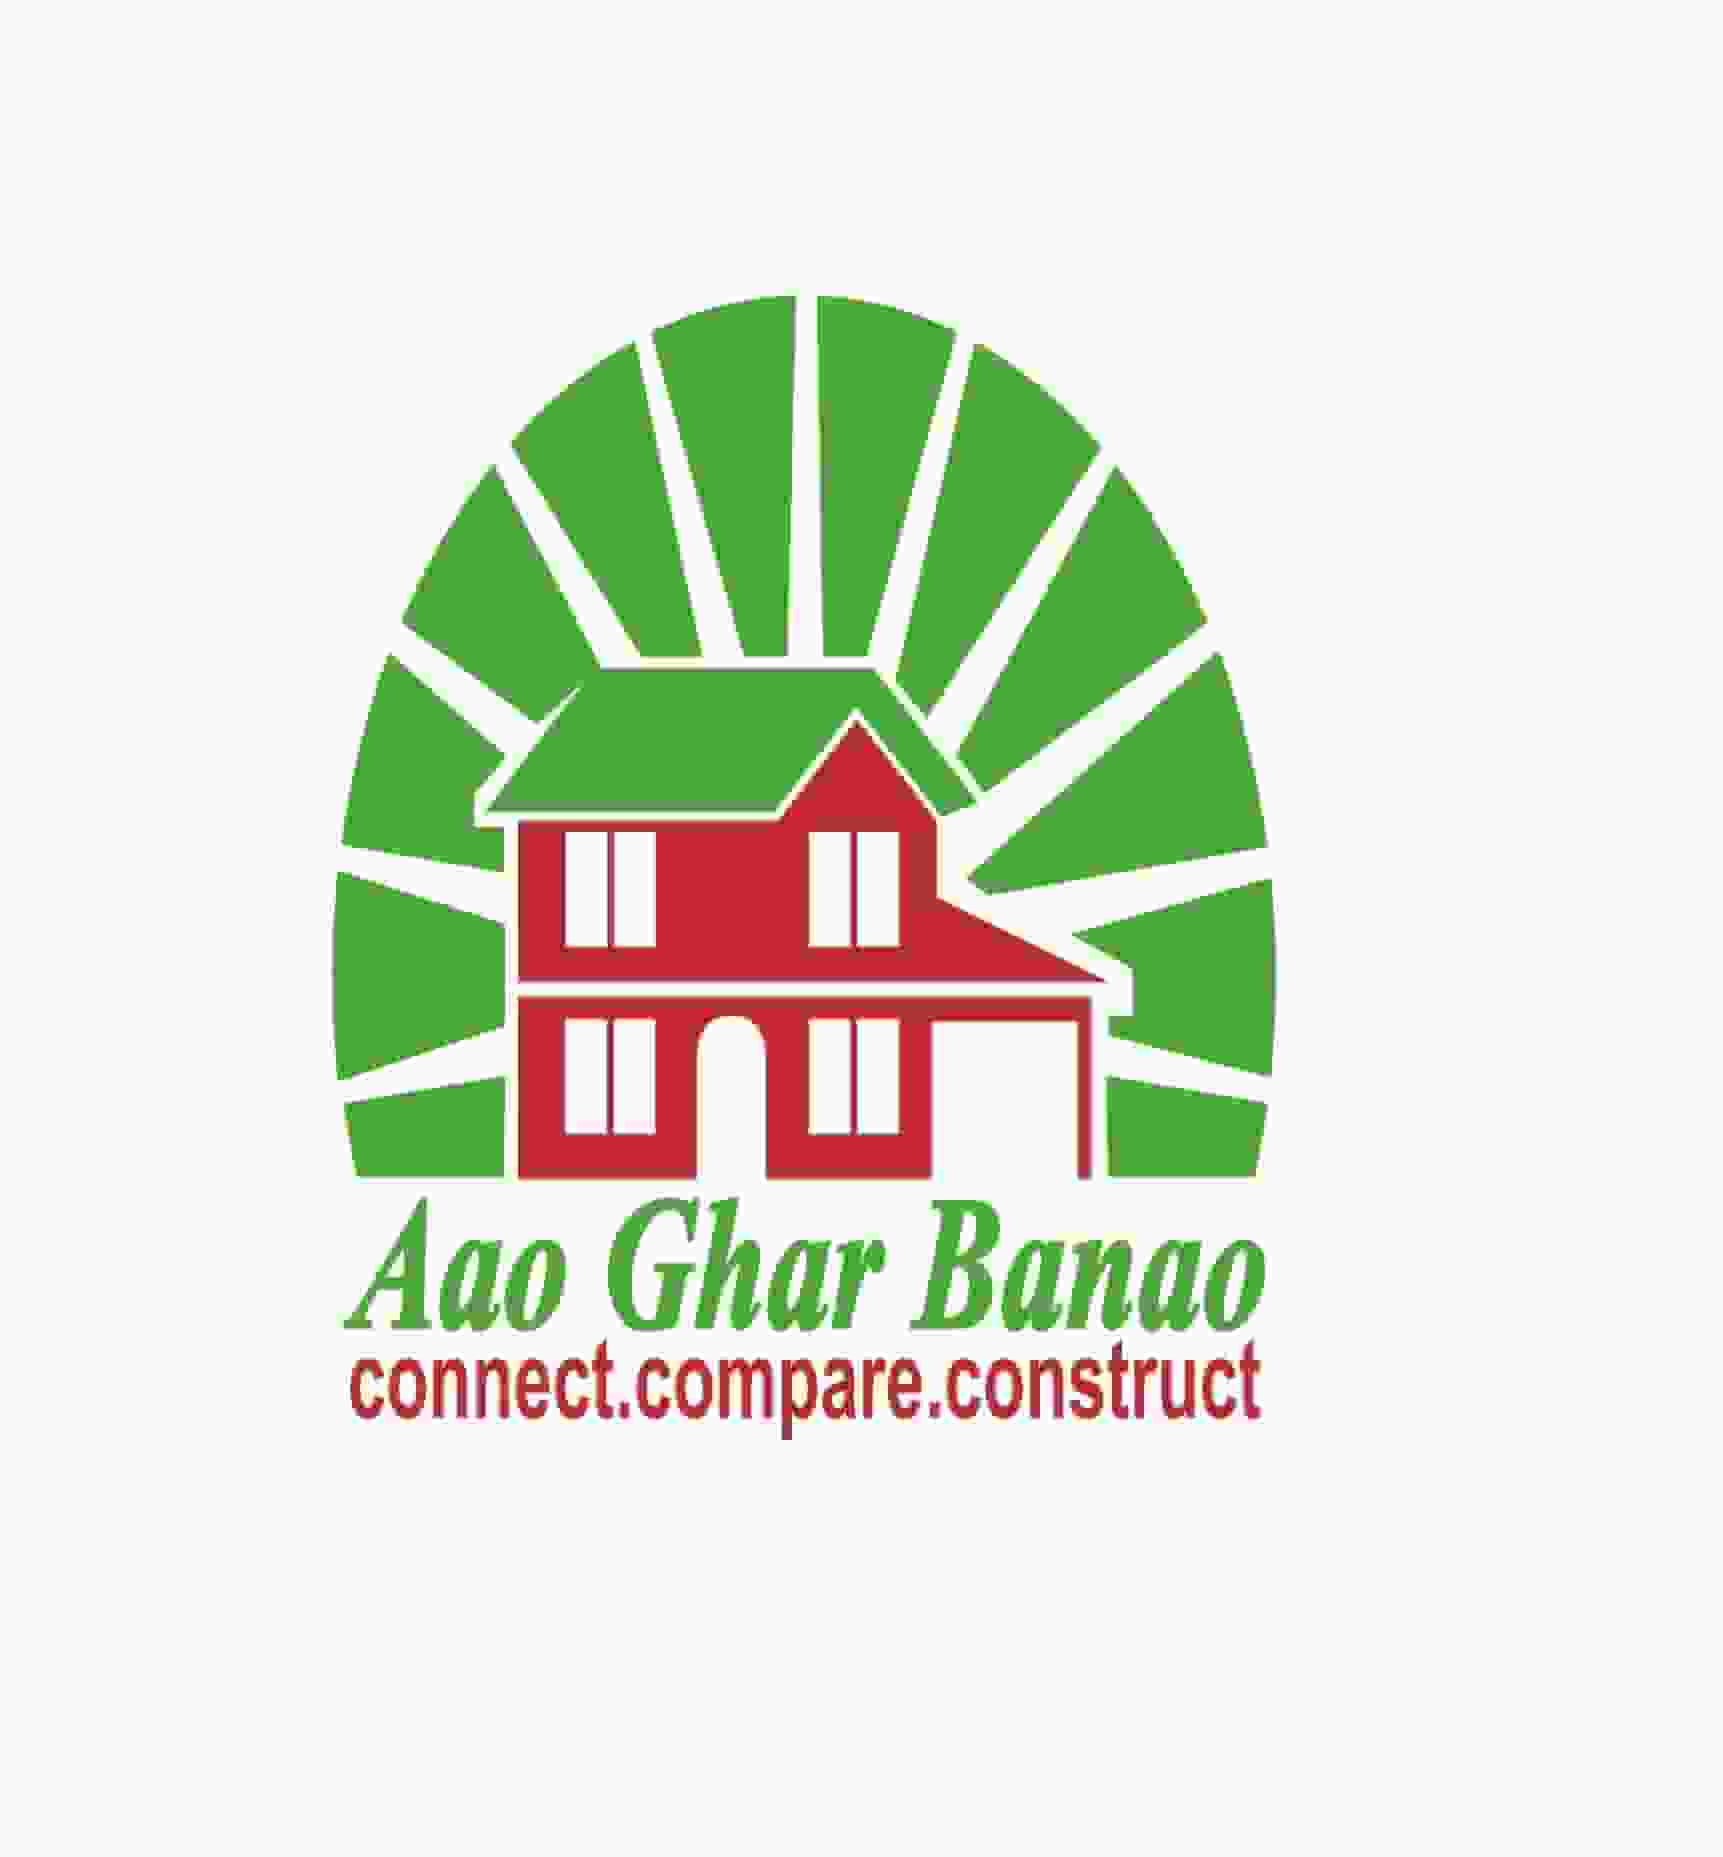 Cement, Cement Suppliers/dealers in Faridabad | Aao Ghar Banao